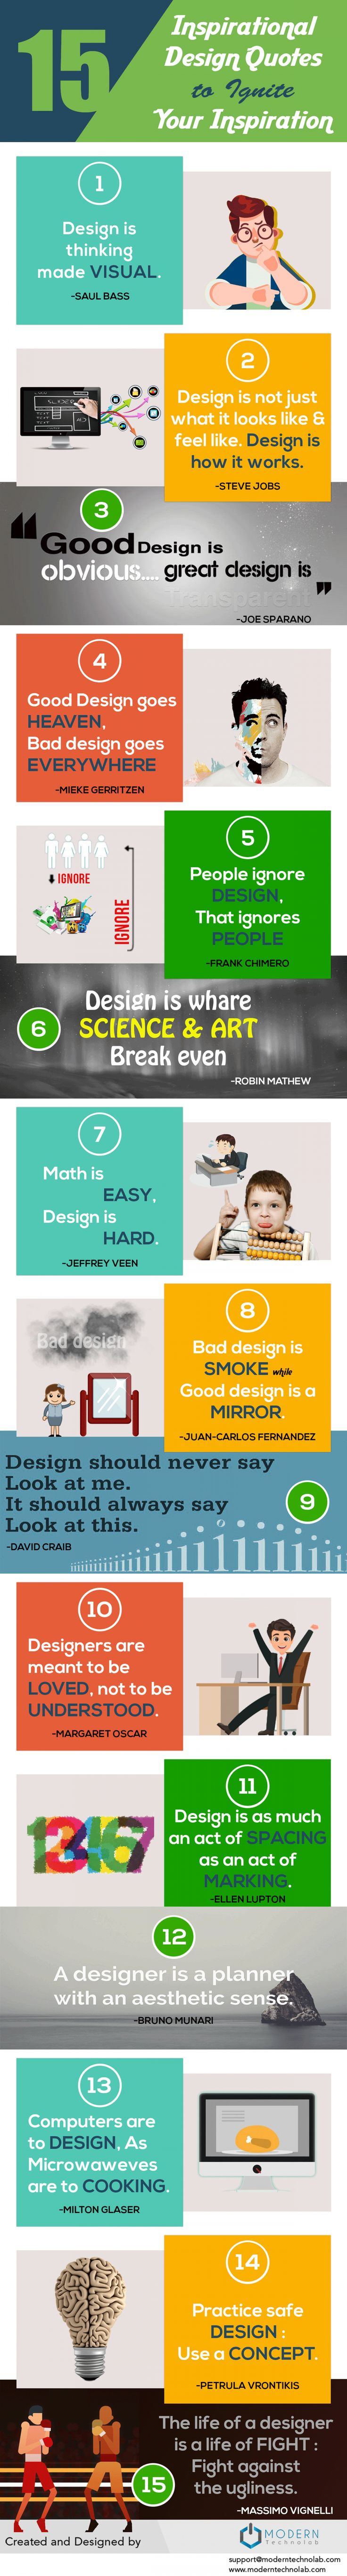 Are you a creative person? Are you a creative person with designing skills? Aha! Then, we are for sure that, you will like this infographic that we have designed especially for those creative people who love to feel inspire and execute their inspiration in their work. #inspirational #design #quotes #inspiration #web_design #infographic